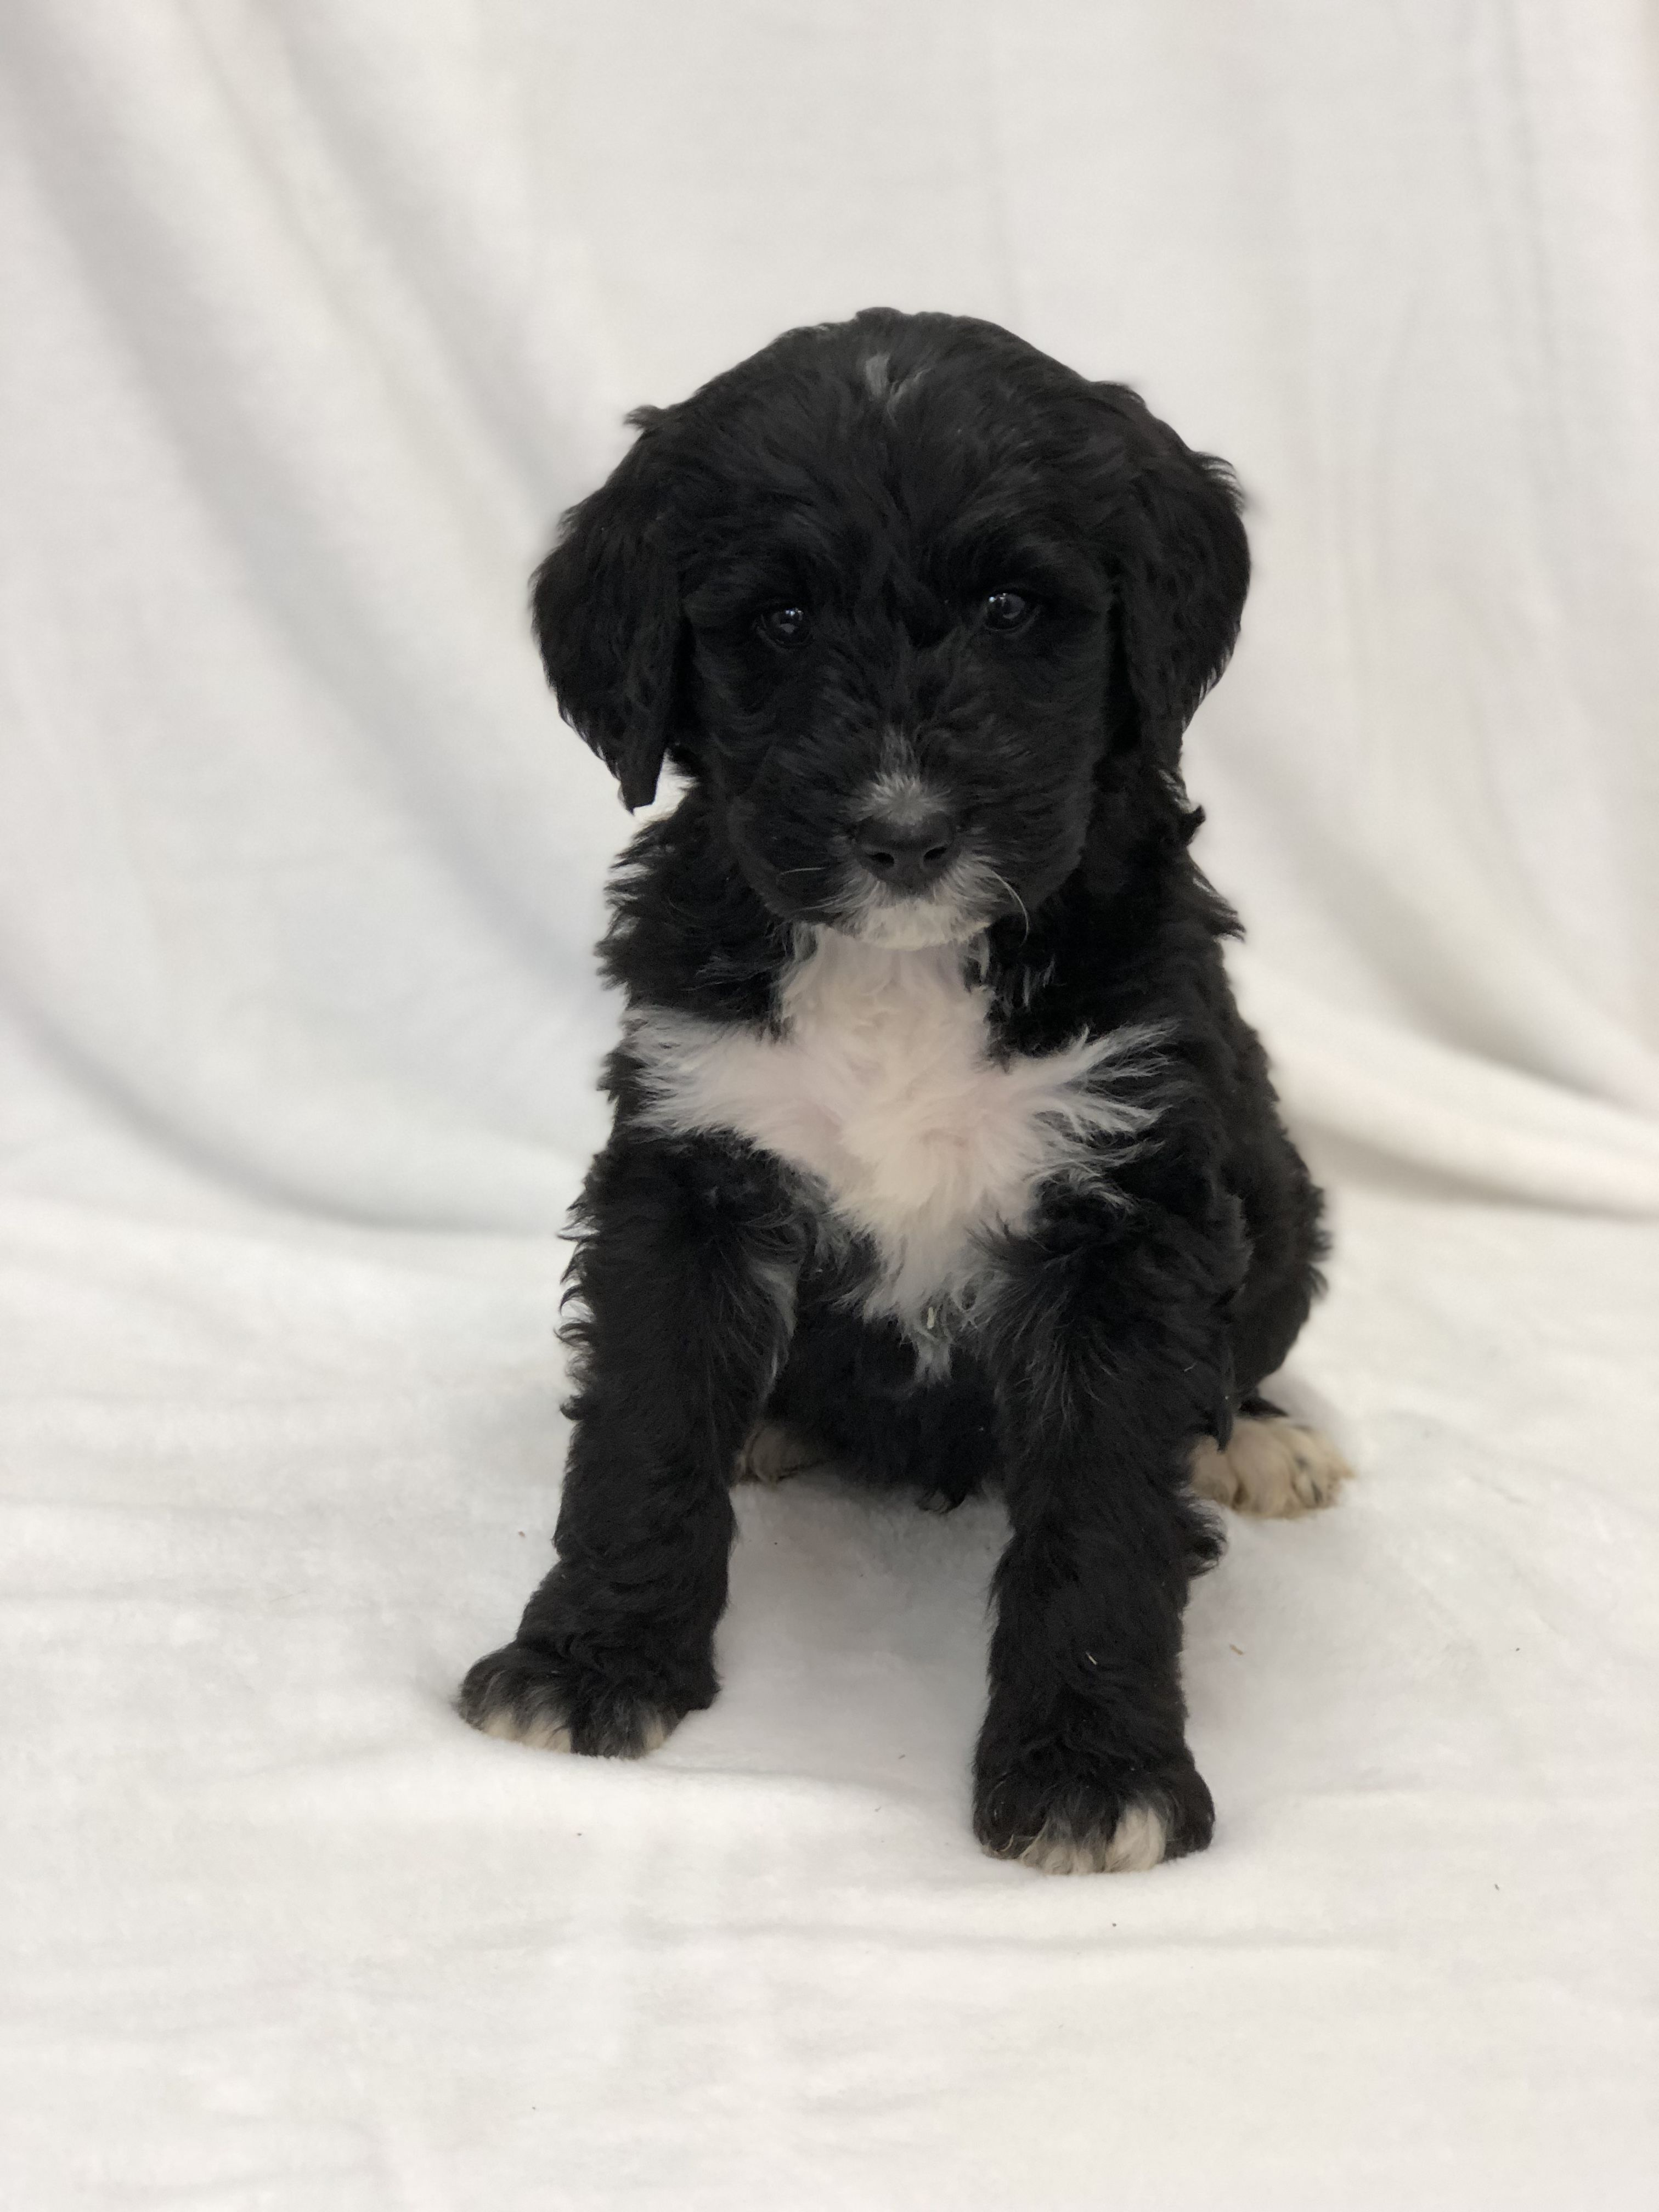 Sophie A Female Bernedoodle Puppy In West Alexandria Ohio Find Cute Bernedoodle Puppies And Responsible Bernedo Puppies For Sale Bichon Frise Puppy Puppies